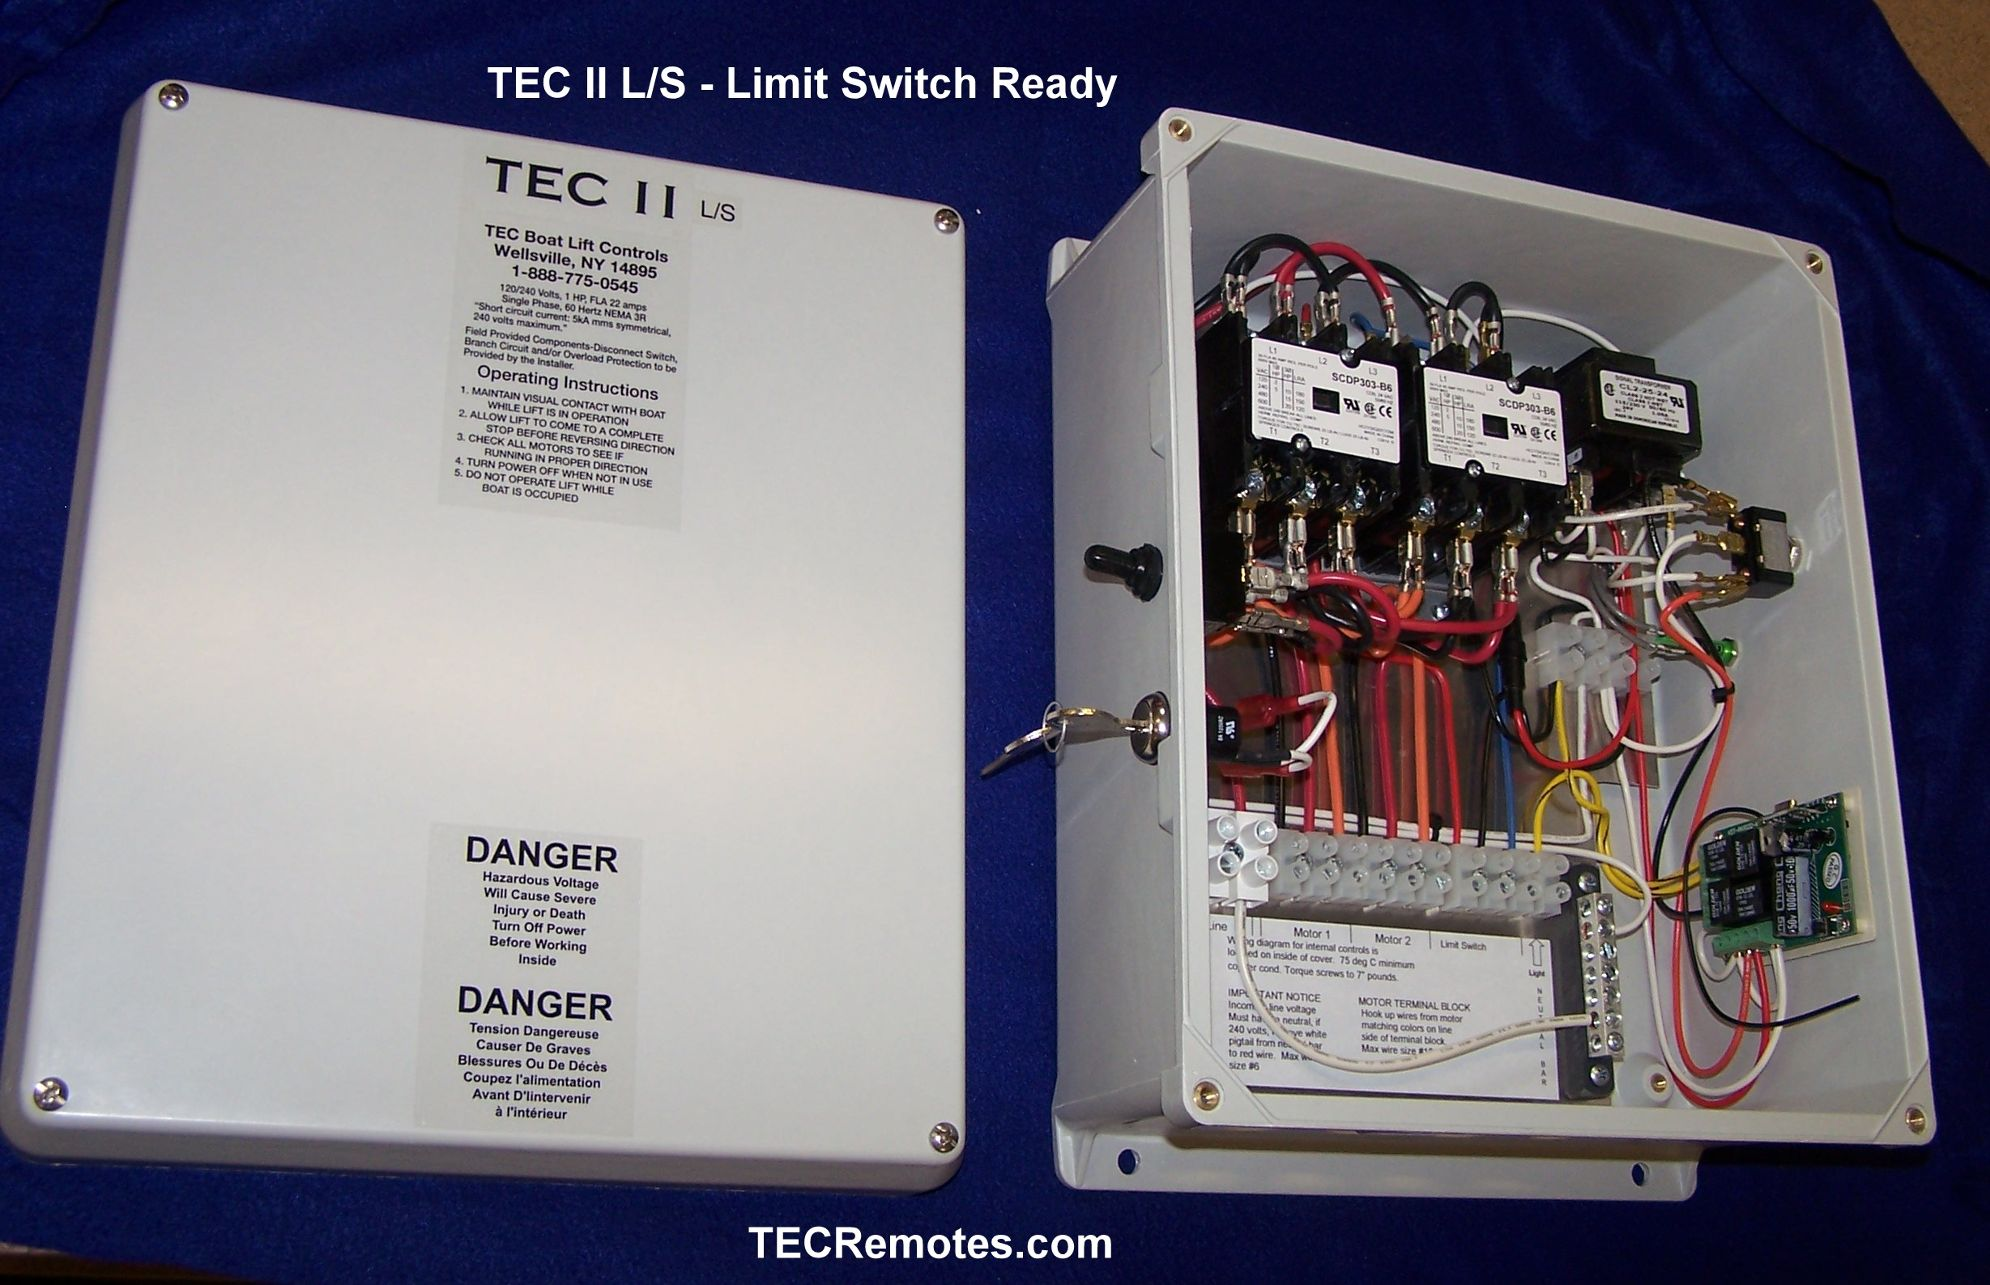 boat lft remote controls tec i tec ii tec 1 2 and tec iv tec ii l s limit switch ready two motor remote